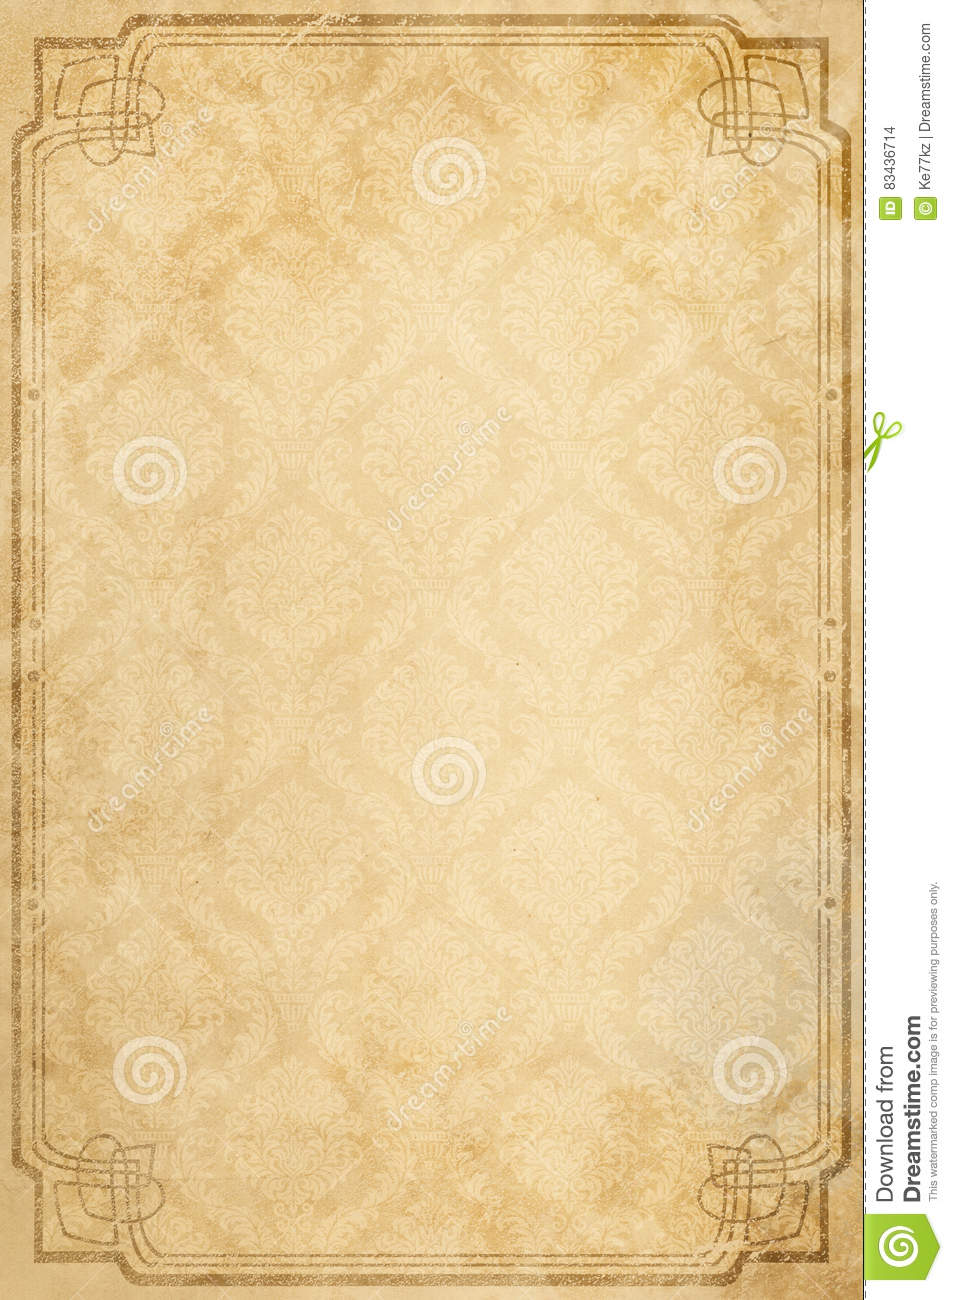 old paper background with patterns and border. stock photo - image